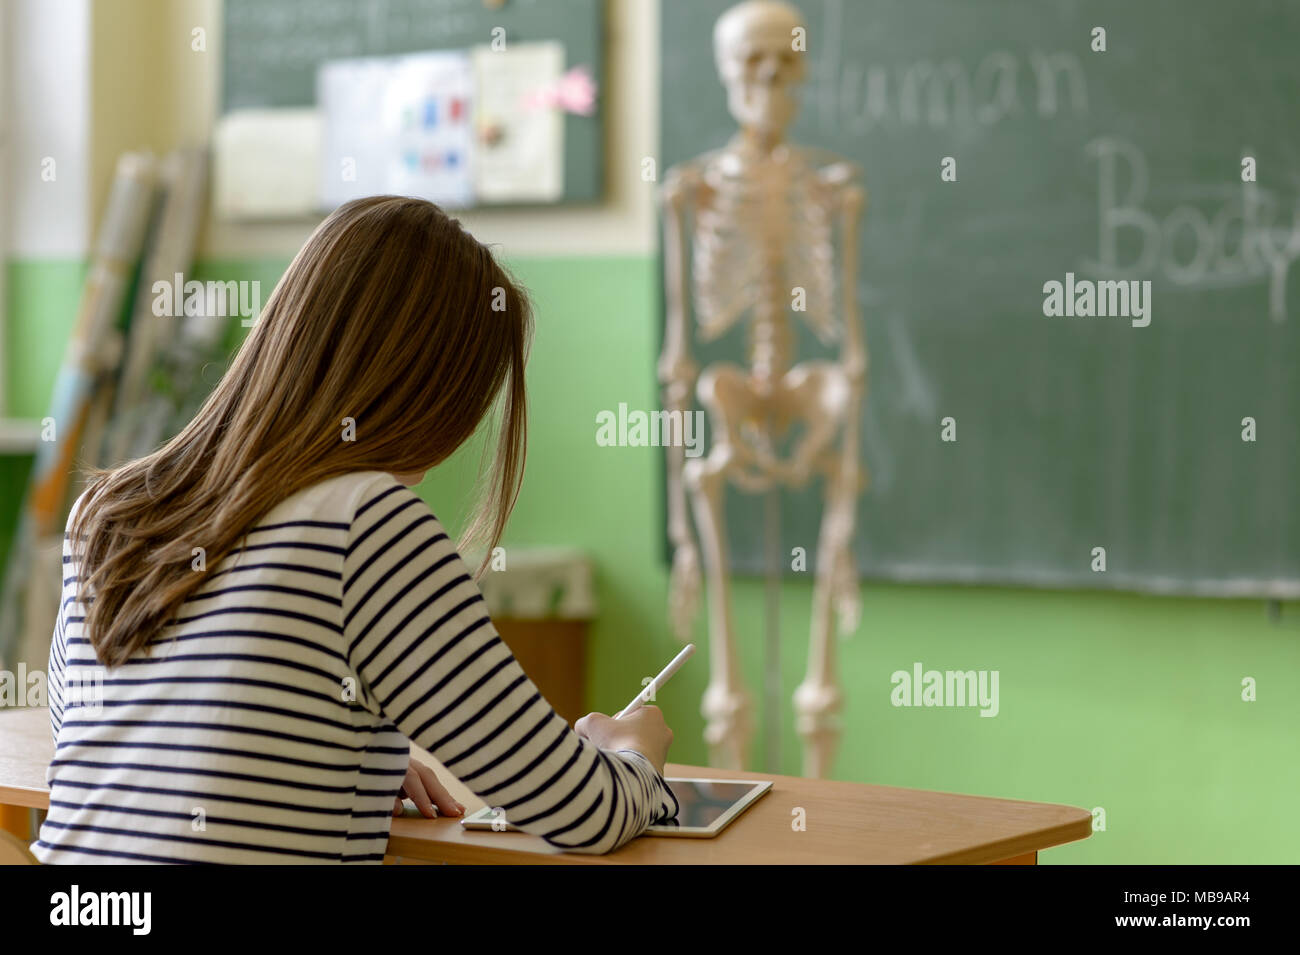 Female student writing notes using digital tablet in biology class. Generation Z Education concept. - Stock Image